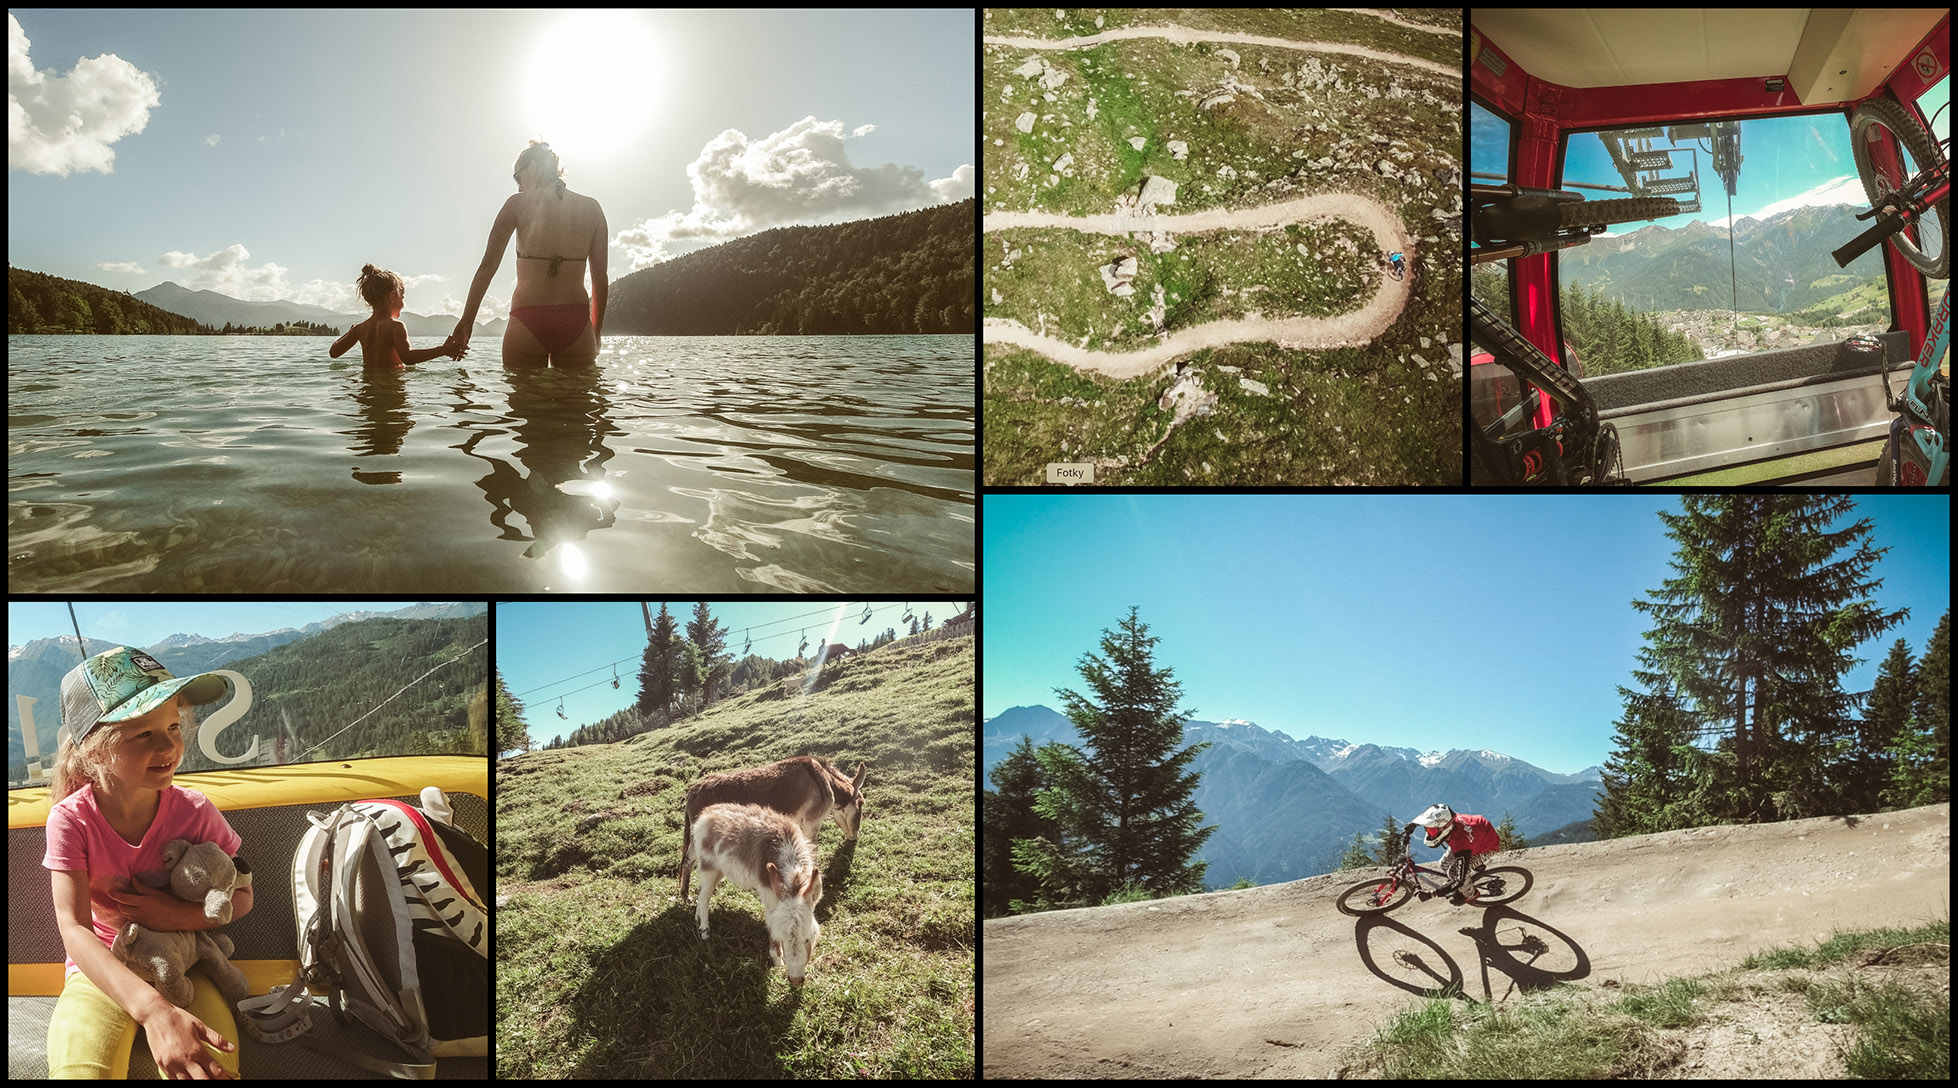 Cycling Holiday with a Family